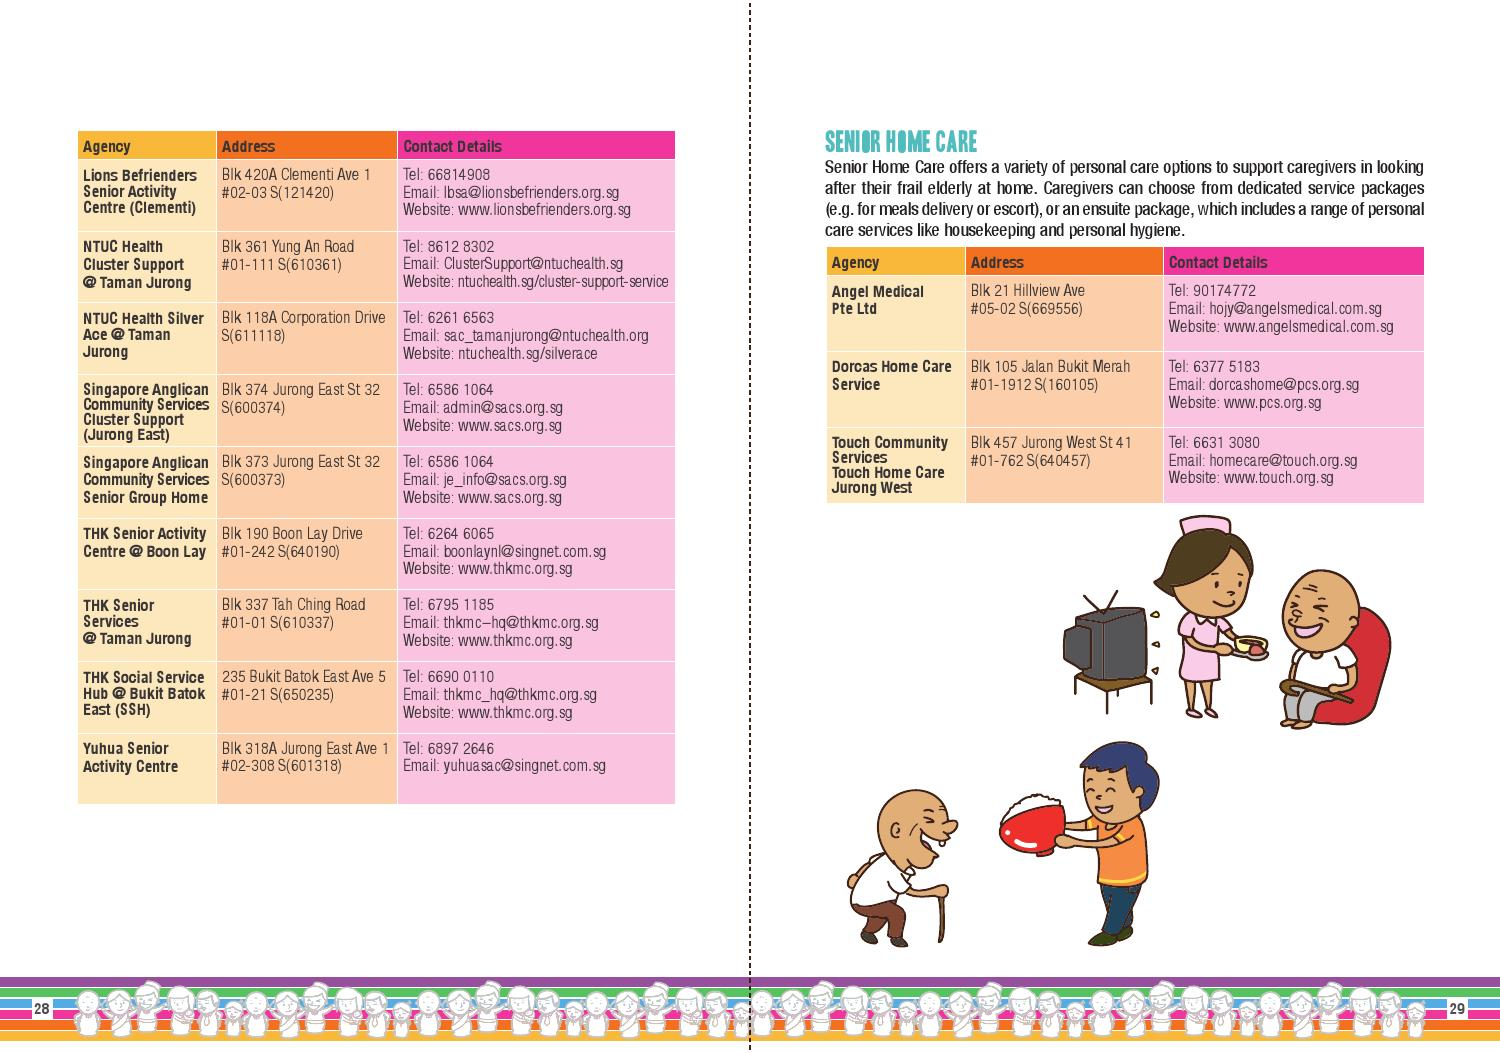 South West Cares Referral Guide by SouthWestCDC - Issuu